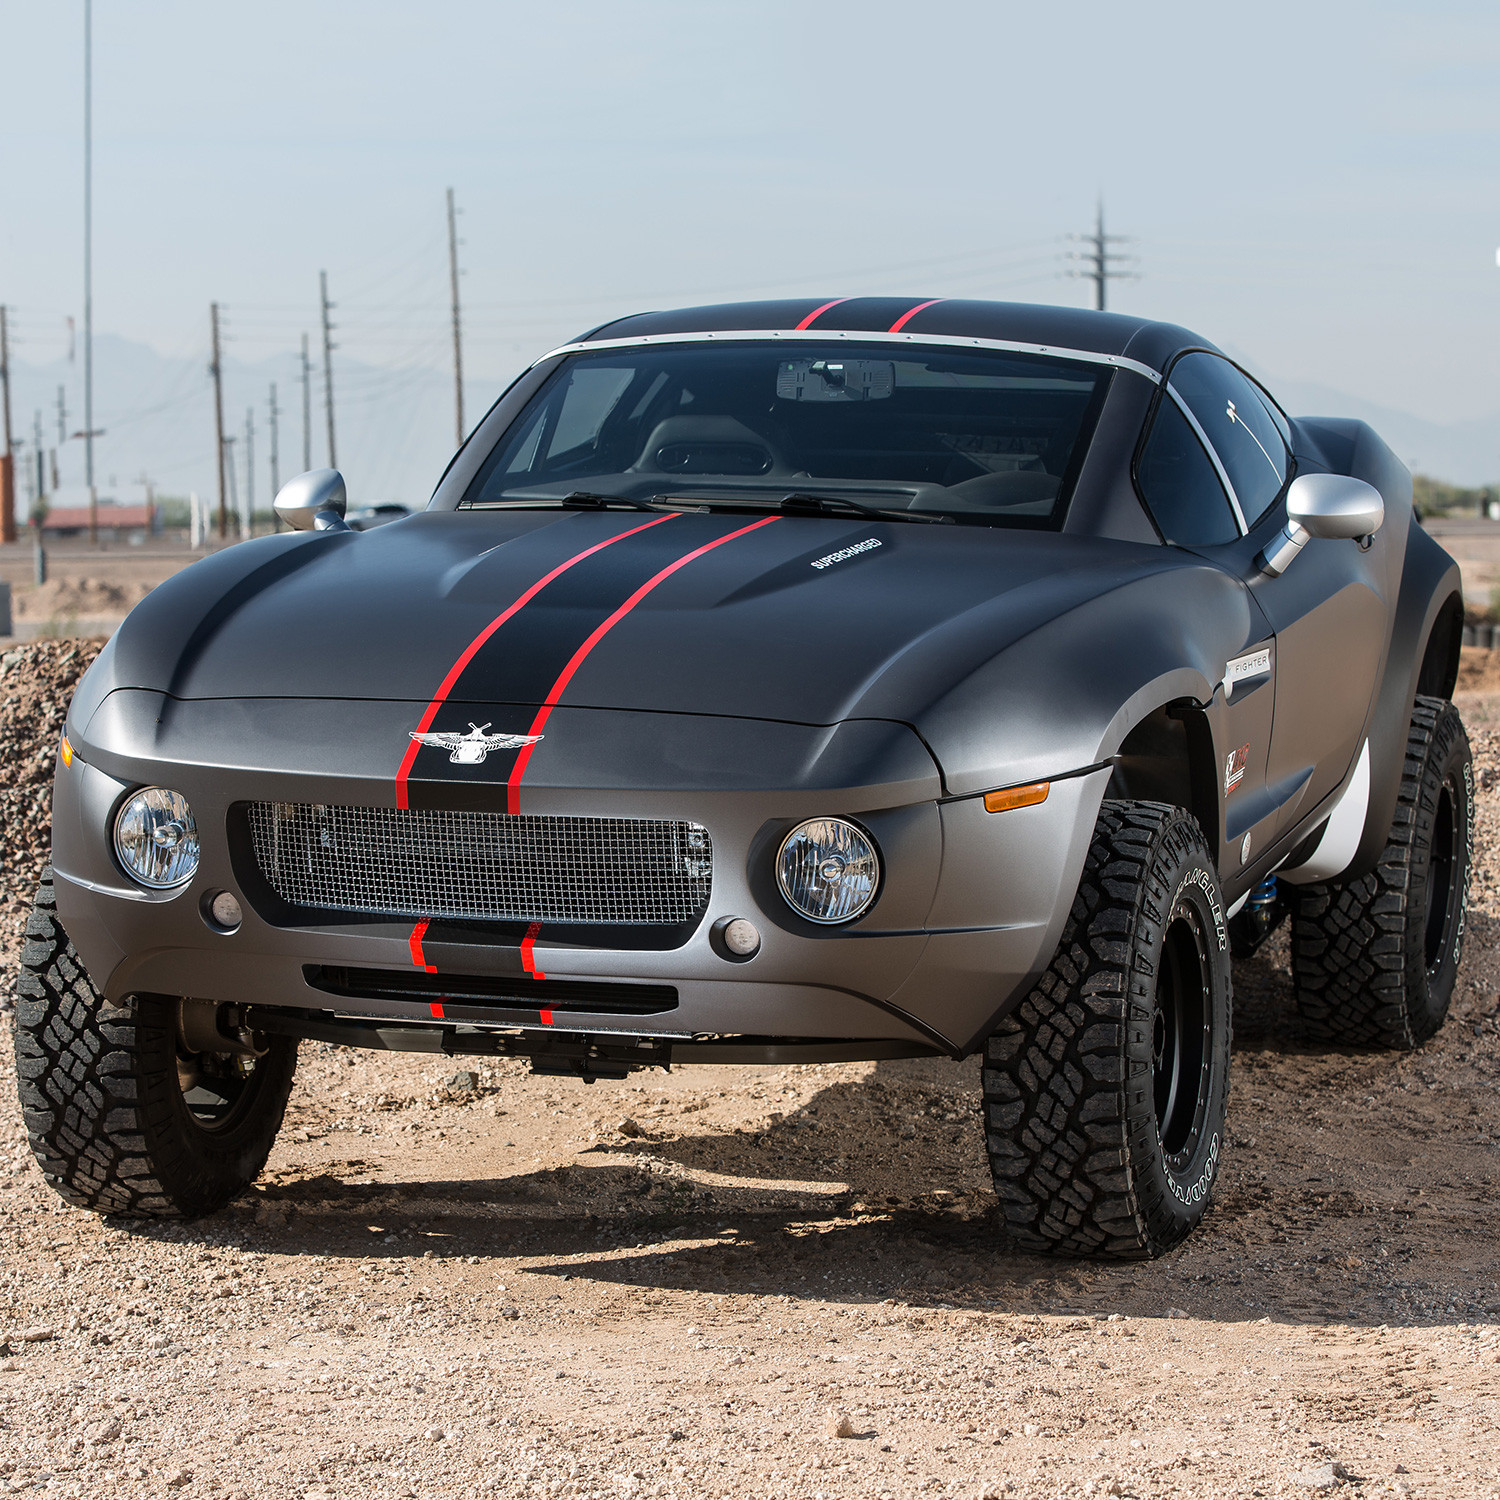 Rally fighter local motors touch of modern for Local motors rally fighter for sale